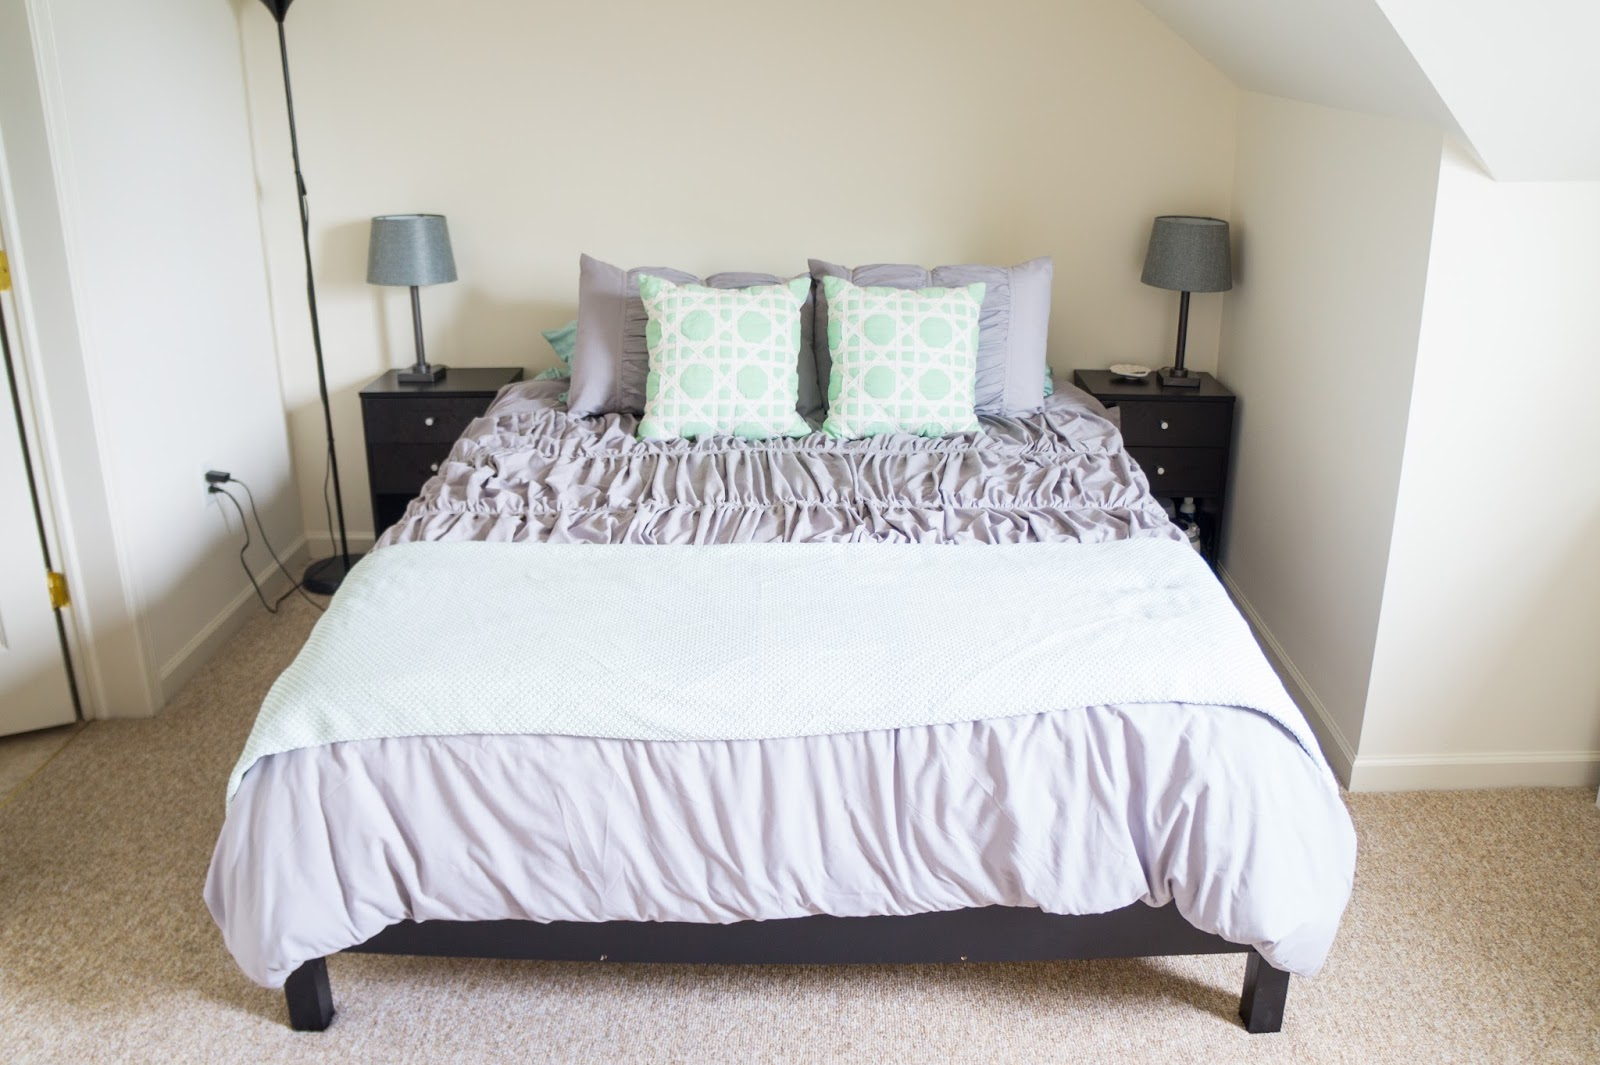 Queen sized bed set with grey comforter, mint pillows, and black end tables.